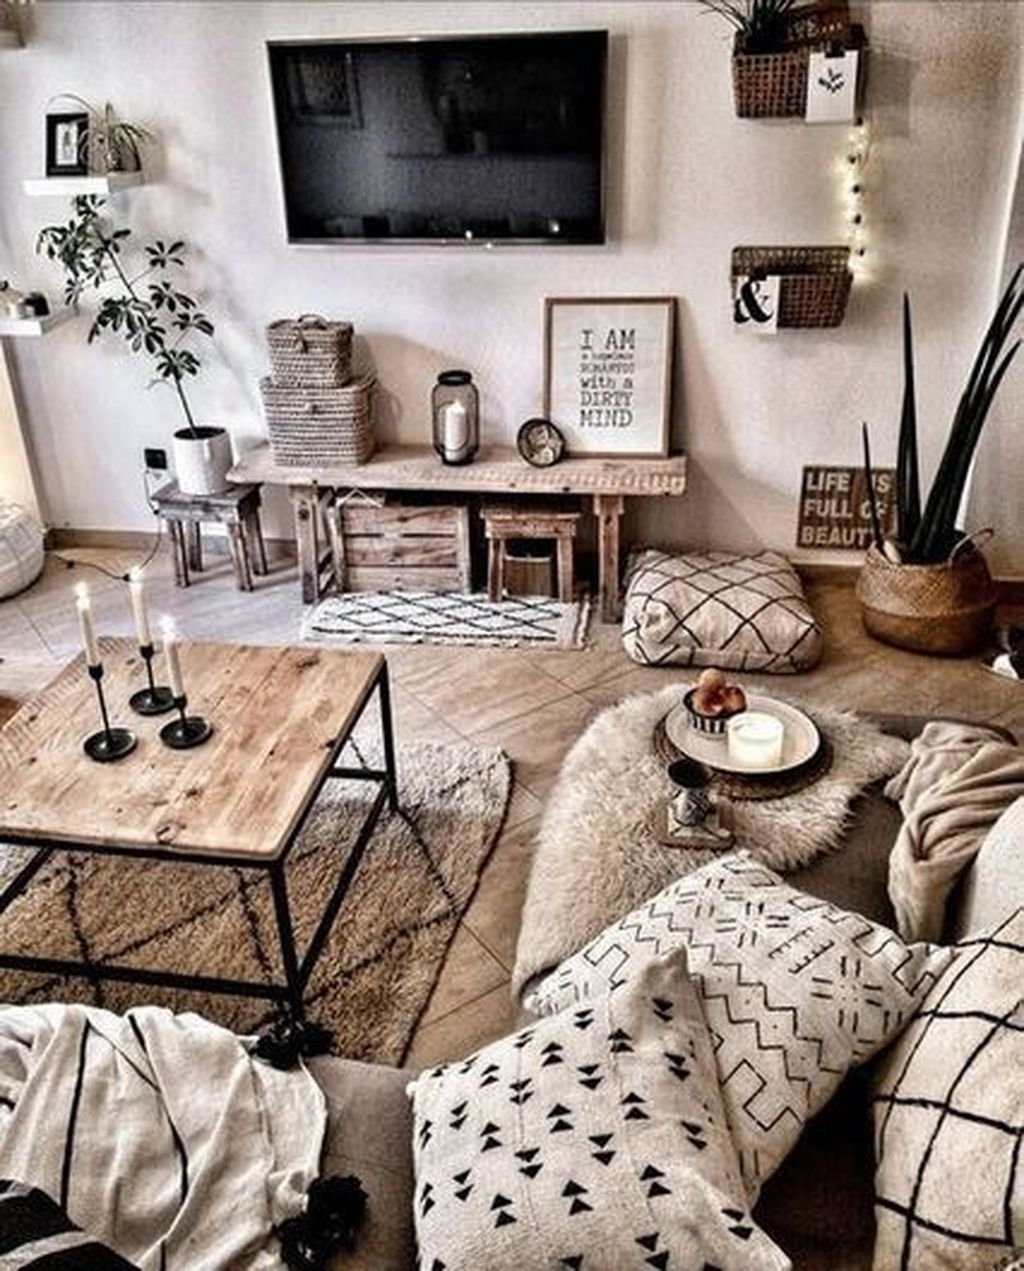 39 Classy Home Decor Ideas For Home Look Fabulous Apartment